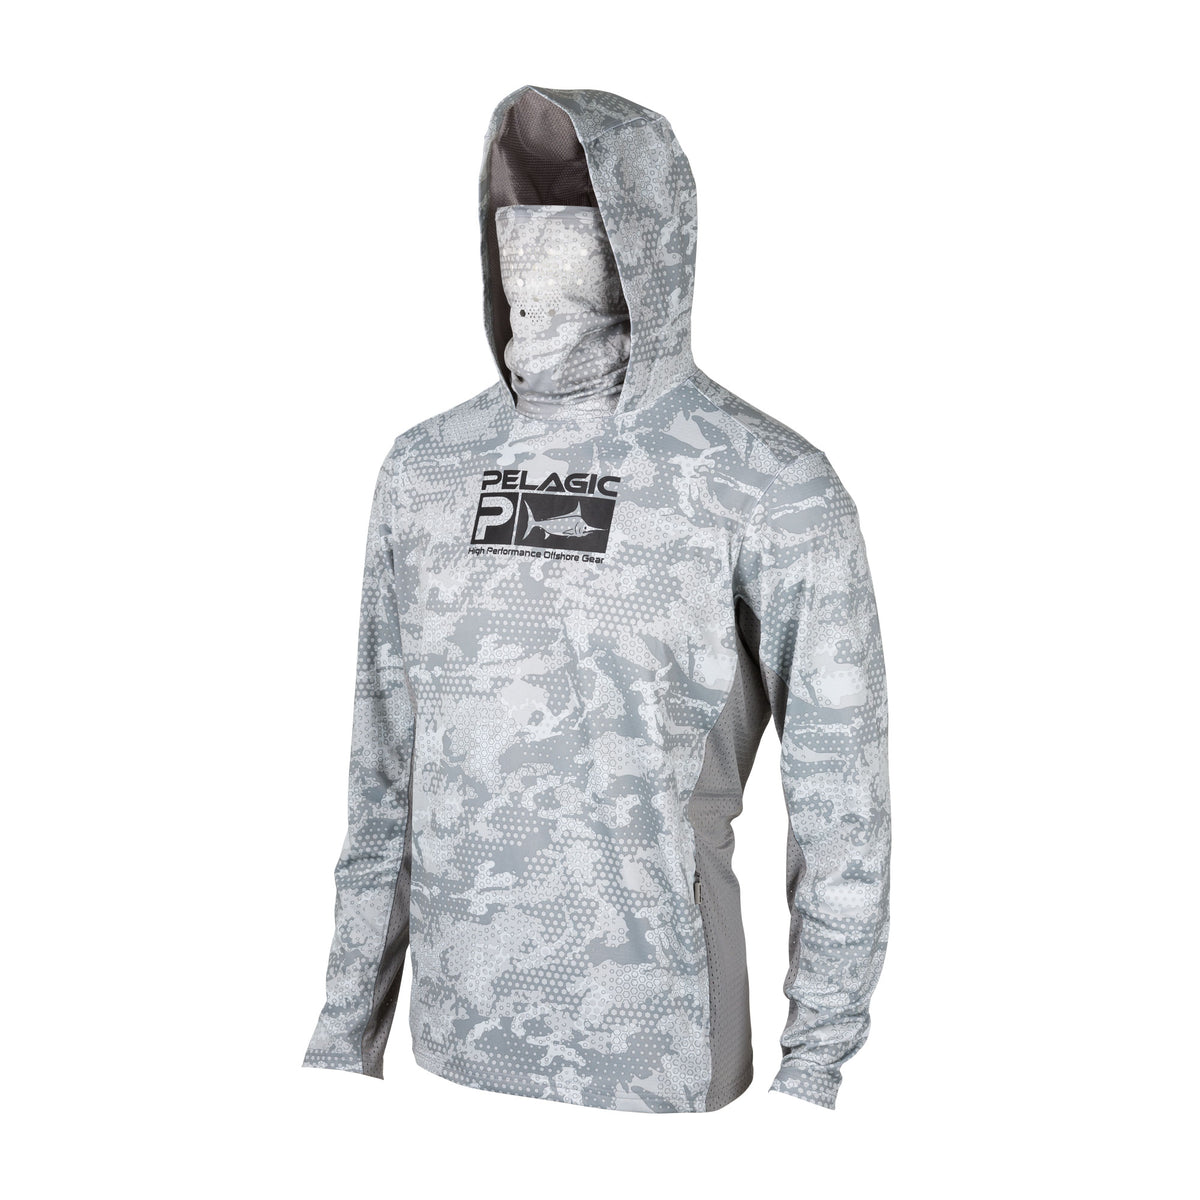 Performance Fishing Hoodie with Face Mask Hooded Sunblock Shirt Sun Shield Long Sleeve Shirt UPF50 Dry Fit Quick-Dry